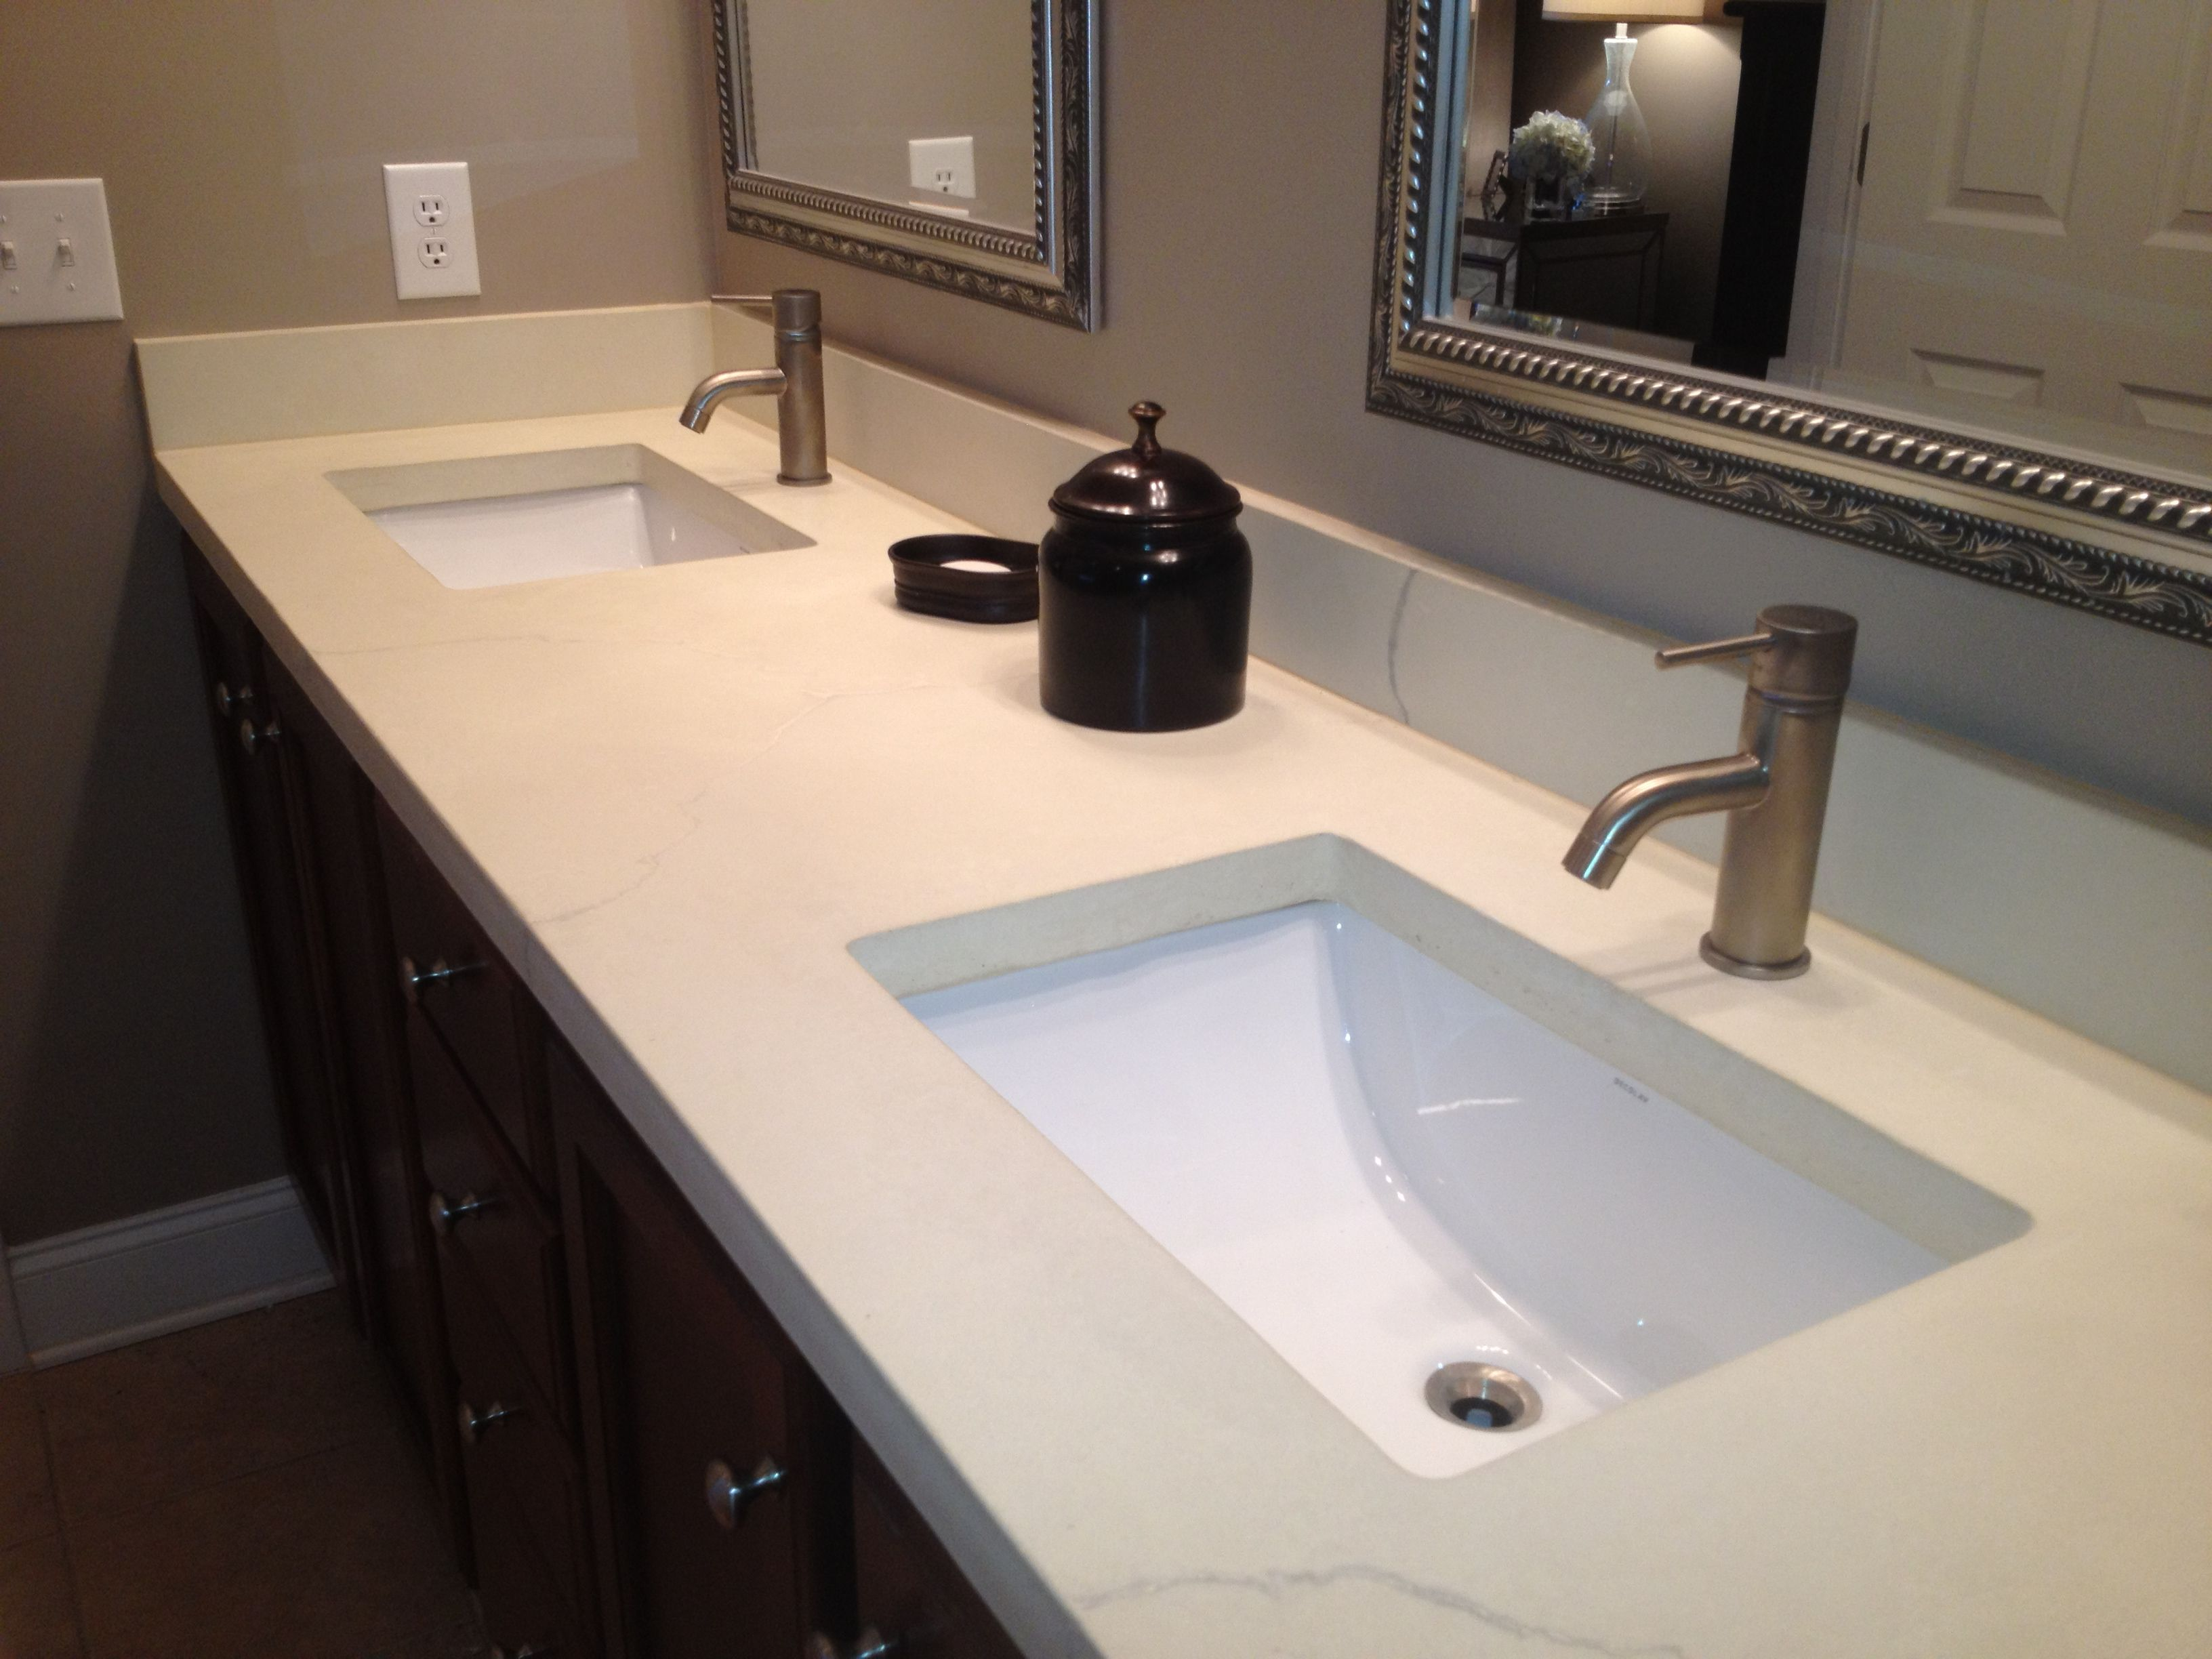 Custom Bathroom Vanity Tops With Sinks custom bathroom countertops | home design ideas